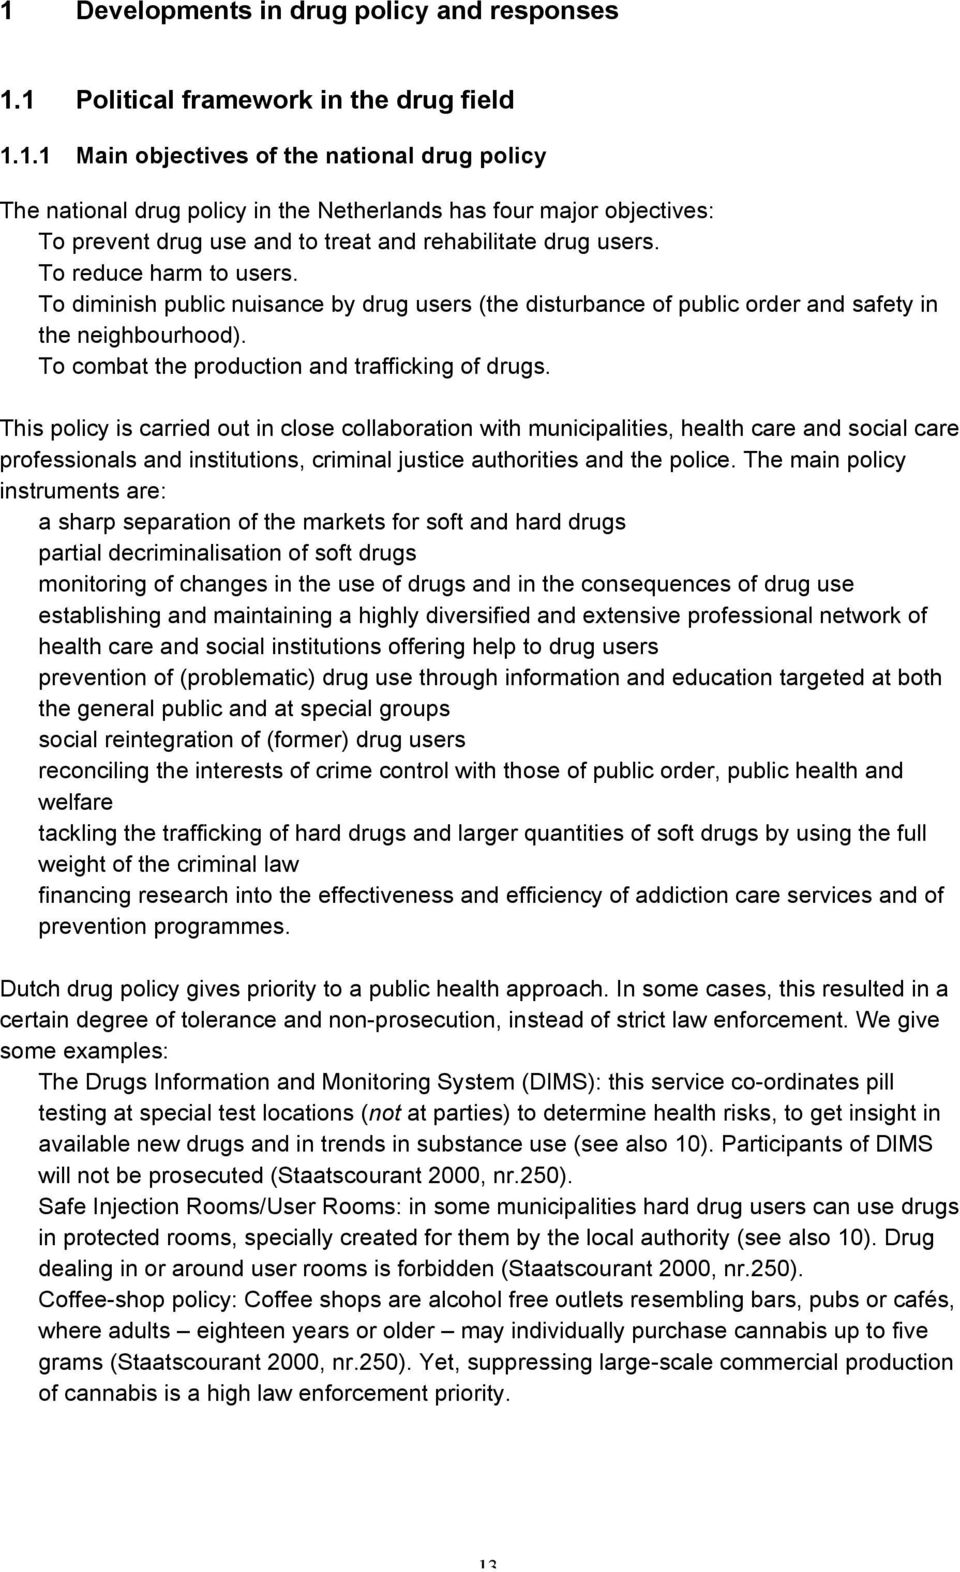 This policy is carried out in close collaboration with municipalities, health care and social care professionals and institutions, criminal justice authorities and the police.